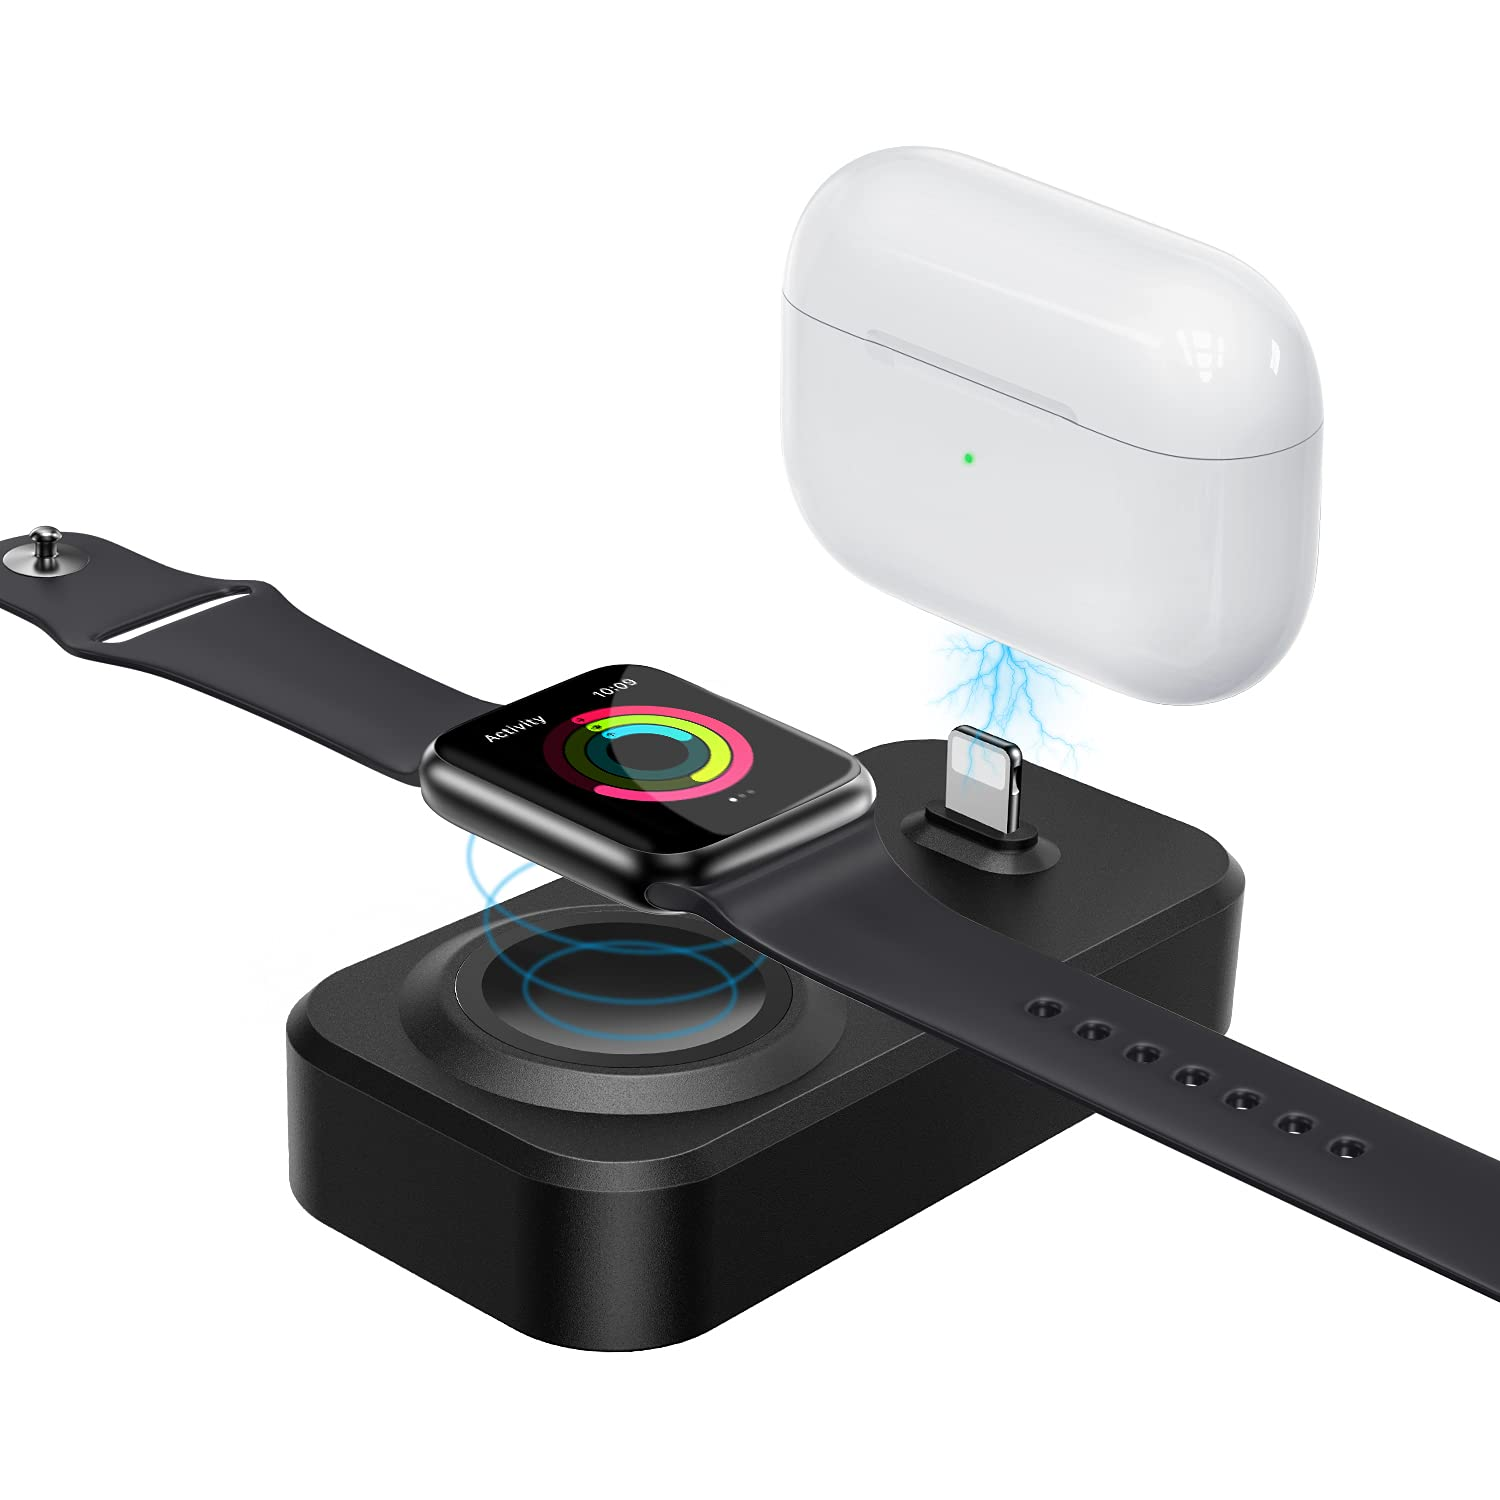 2 in 1 Charger Stand for Apple Watch and Airpods, Aluzdoso Charging Dock Compatible with Apple Watch 6/SE/5/4/3/2/1 (44mm, 42mm, 40mm, 38mm) & Airpods Pro/1/2